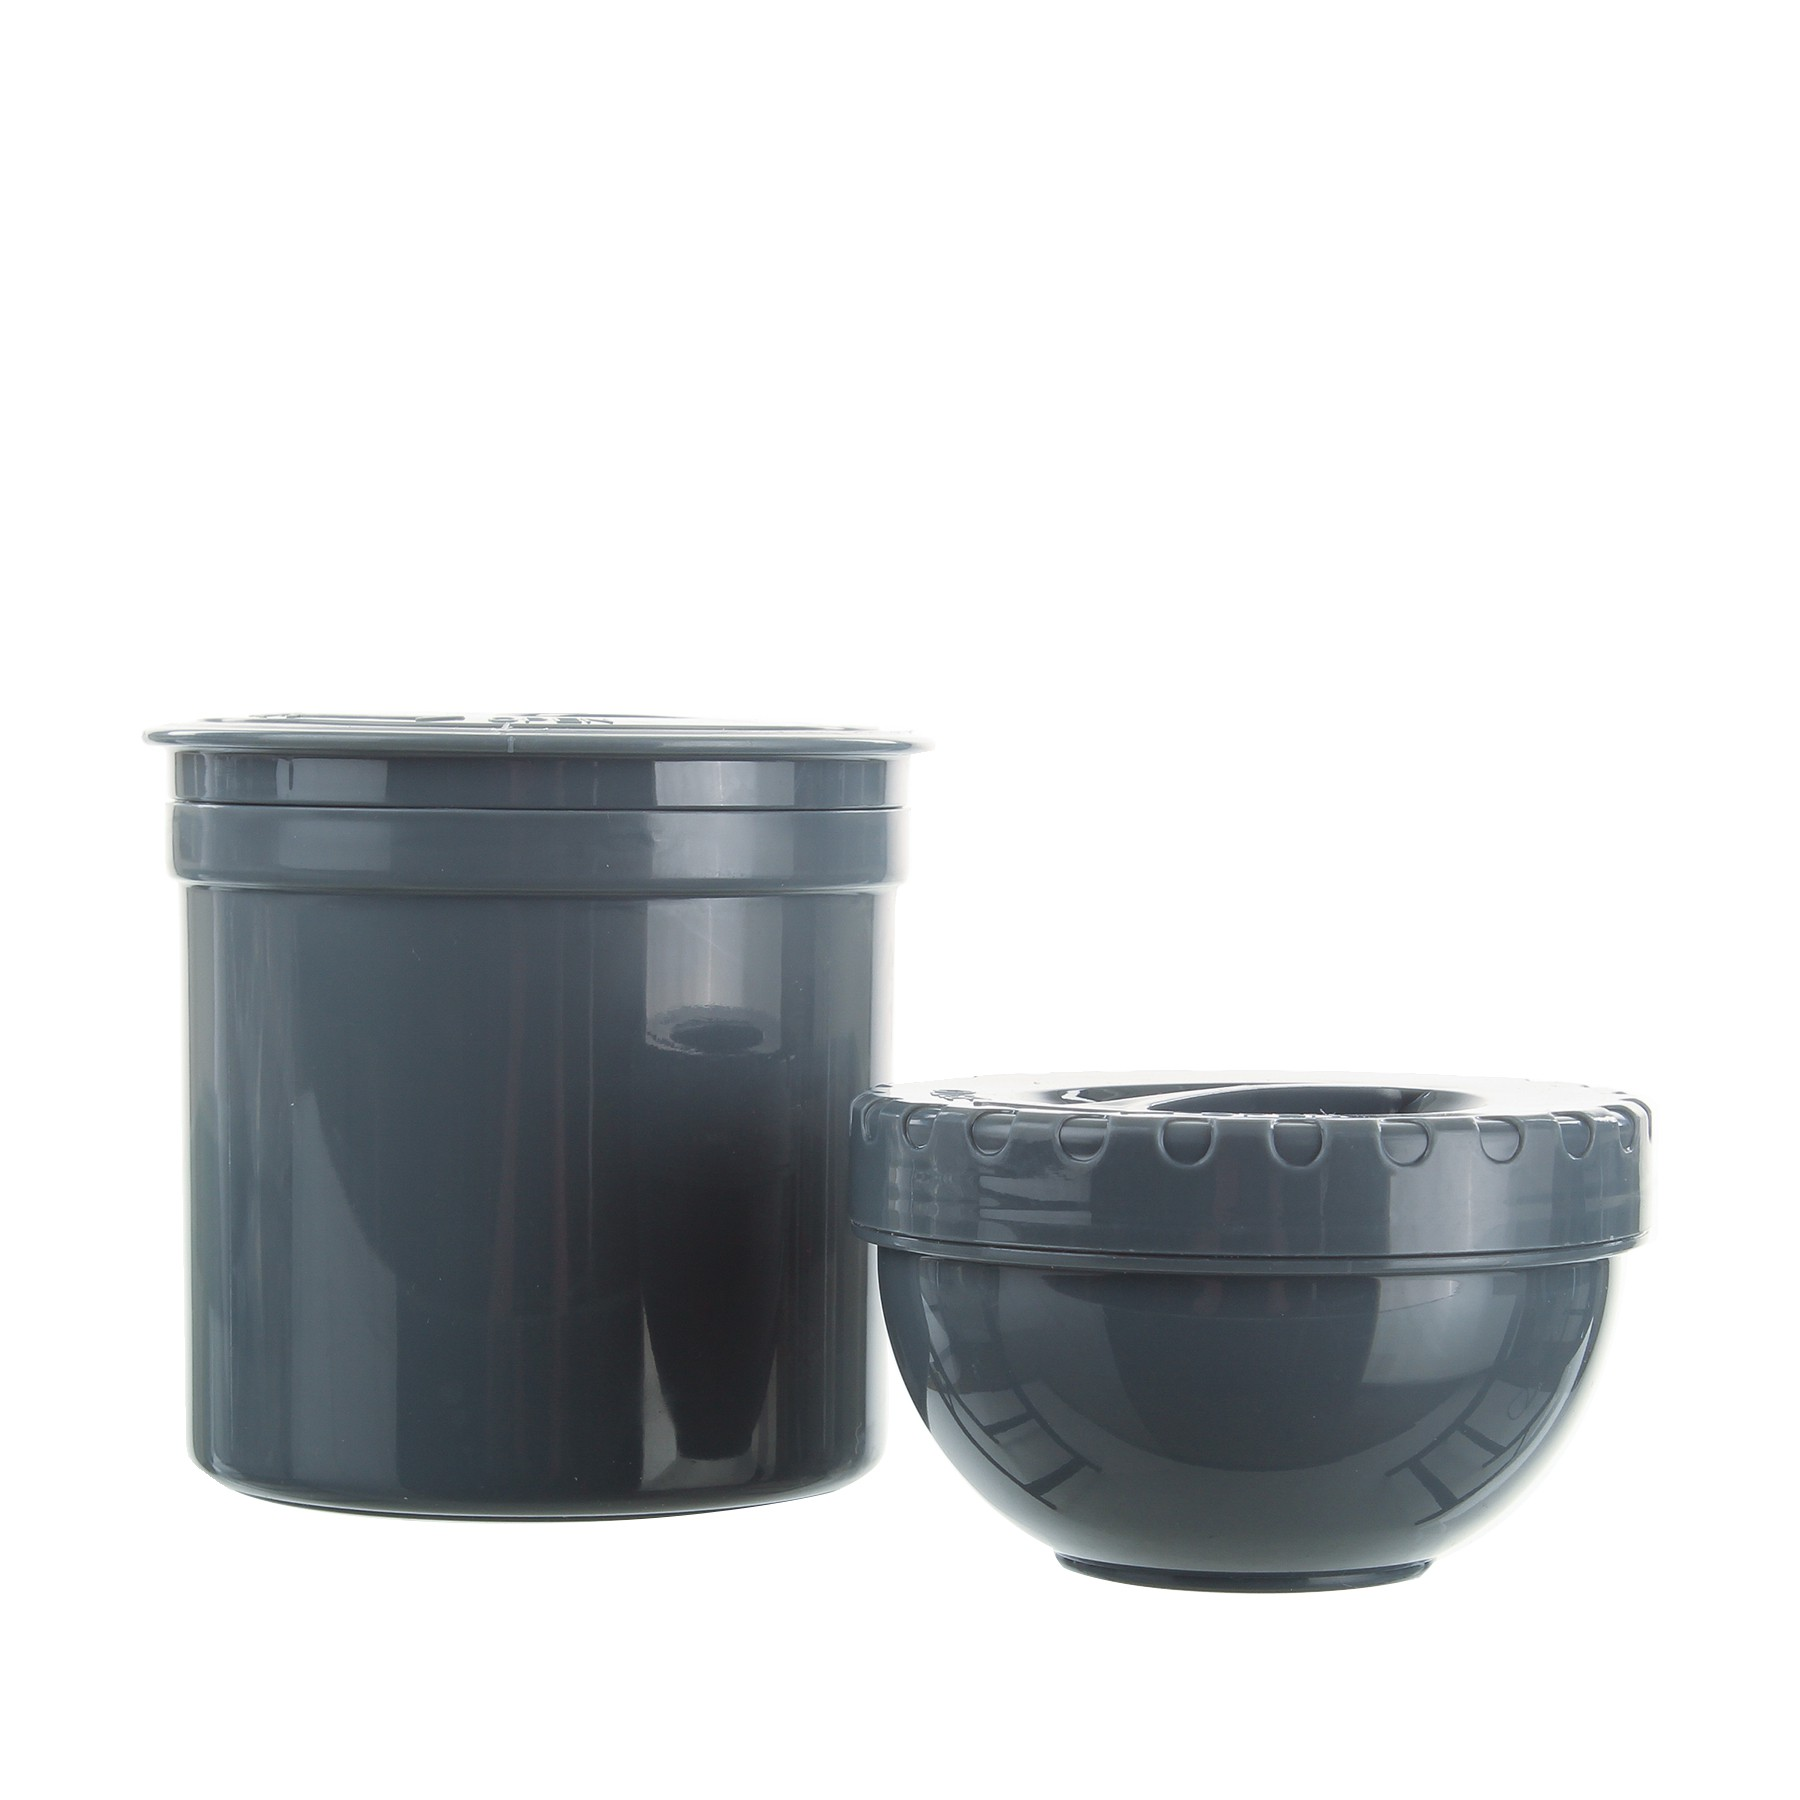 Becher und Behälter Set, 2-teilig, 880 ml Bild https://cdn03.plentymarkets.com/zsy4vjx32p87/item/images/5042/full/13066B-ama-01.JPG